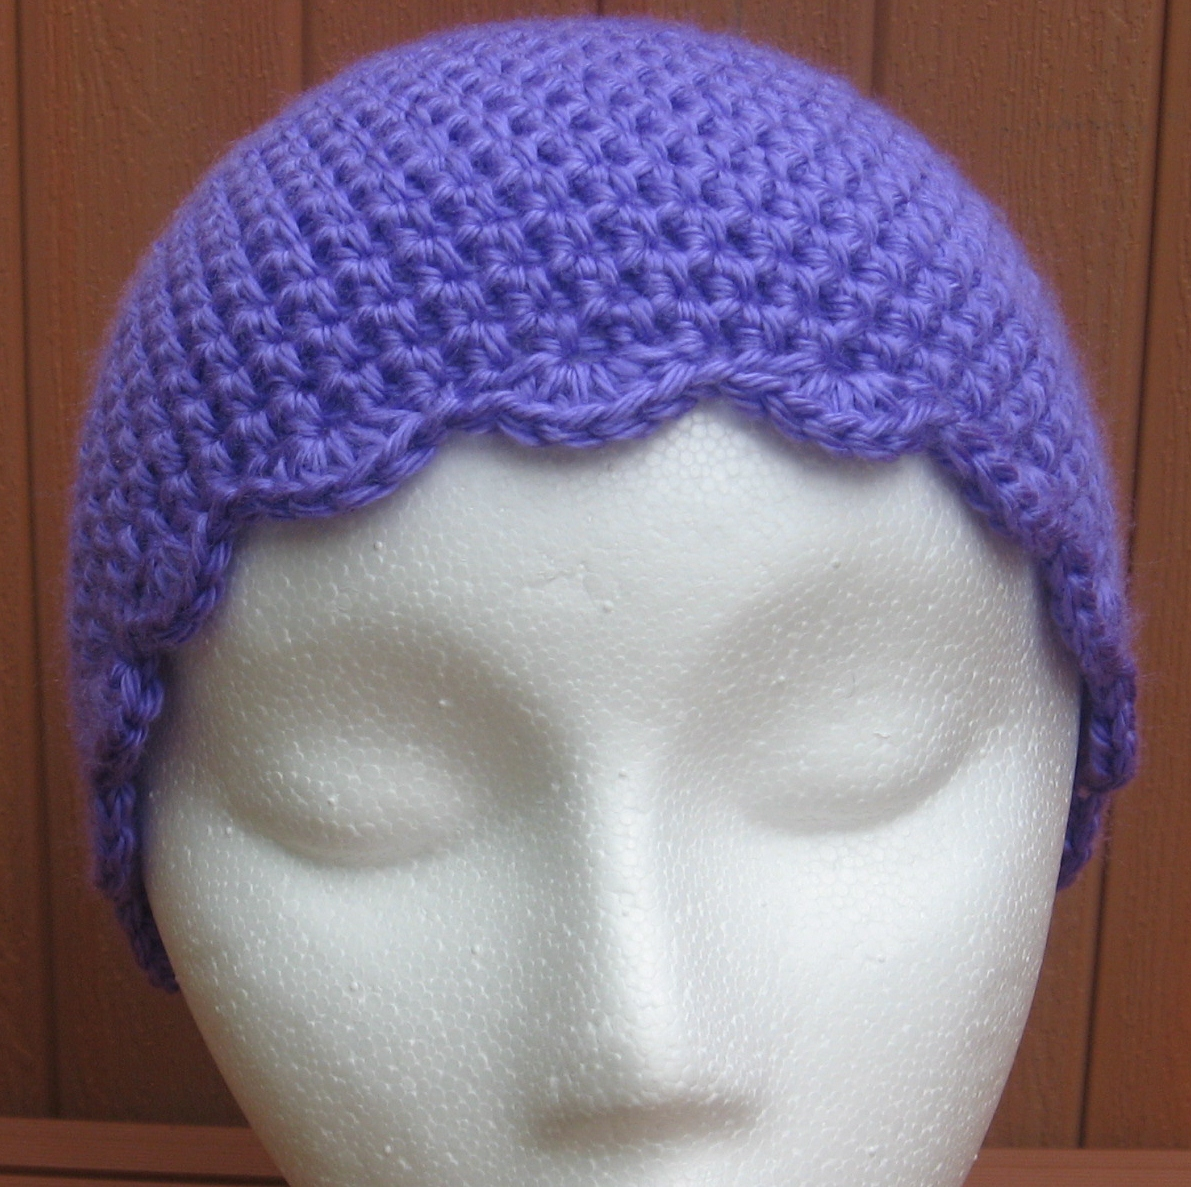 Crochet Patterns Hats For Cancer Patients : Crochet Projects: Crochet Chemo Sleep Cap